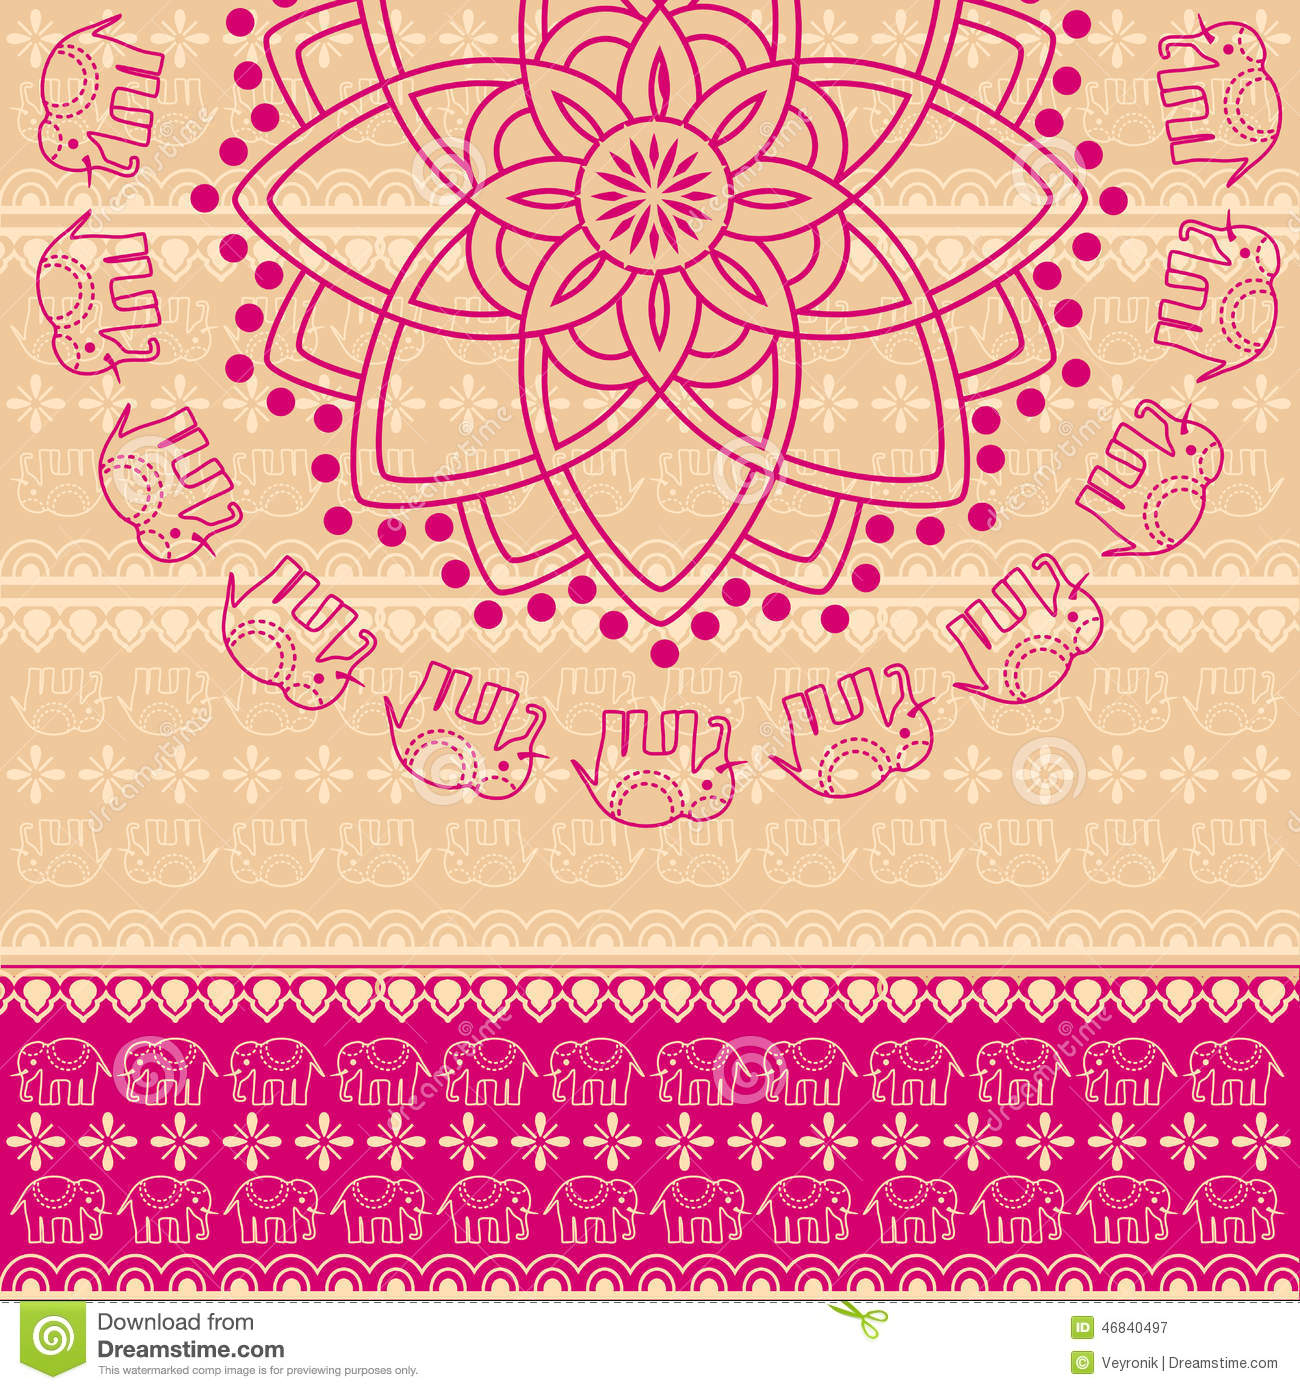 Pink Henna Elephant Mandala Background Illustration 46840497 Megapixl